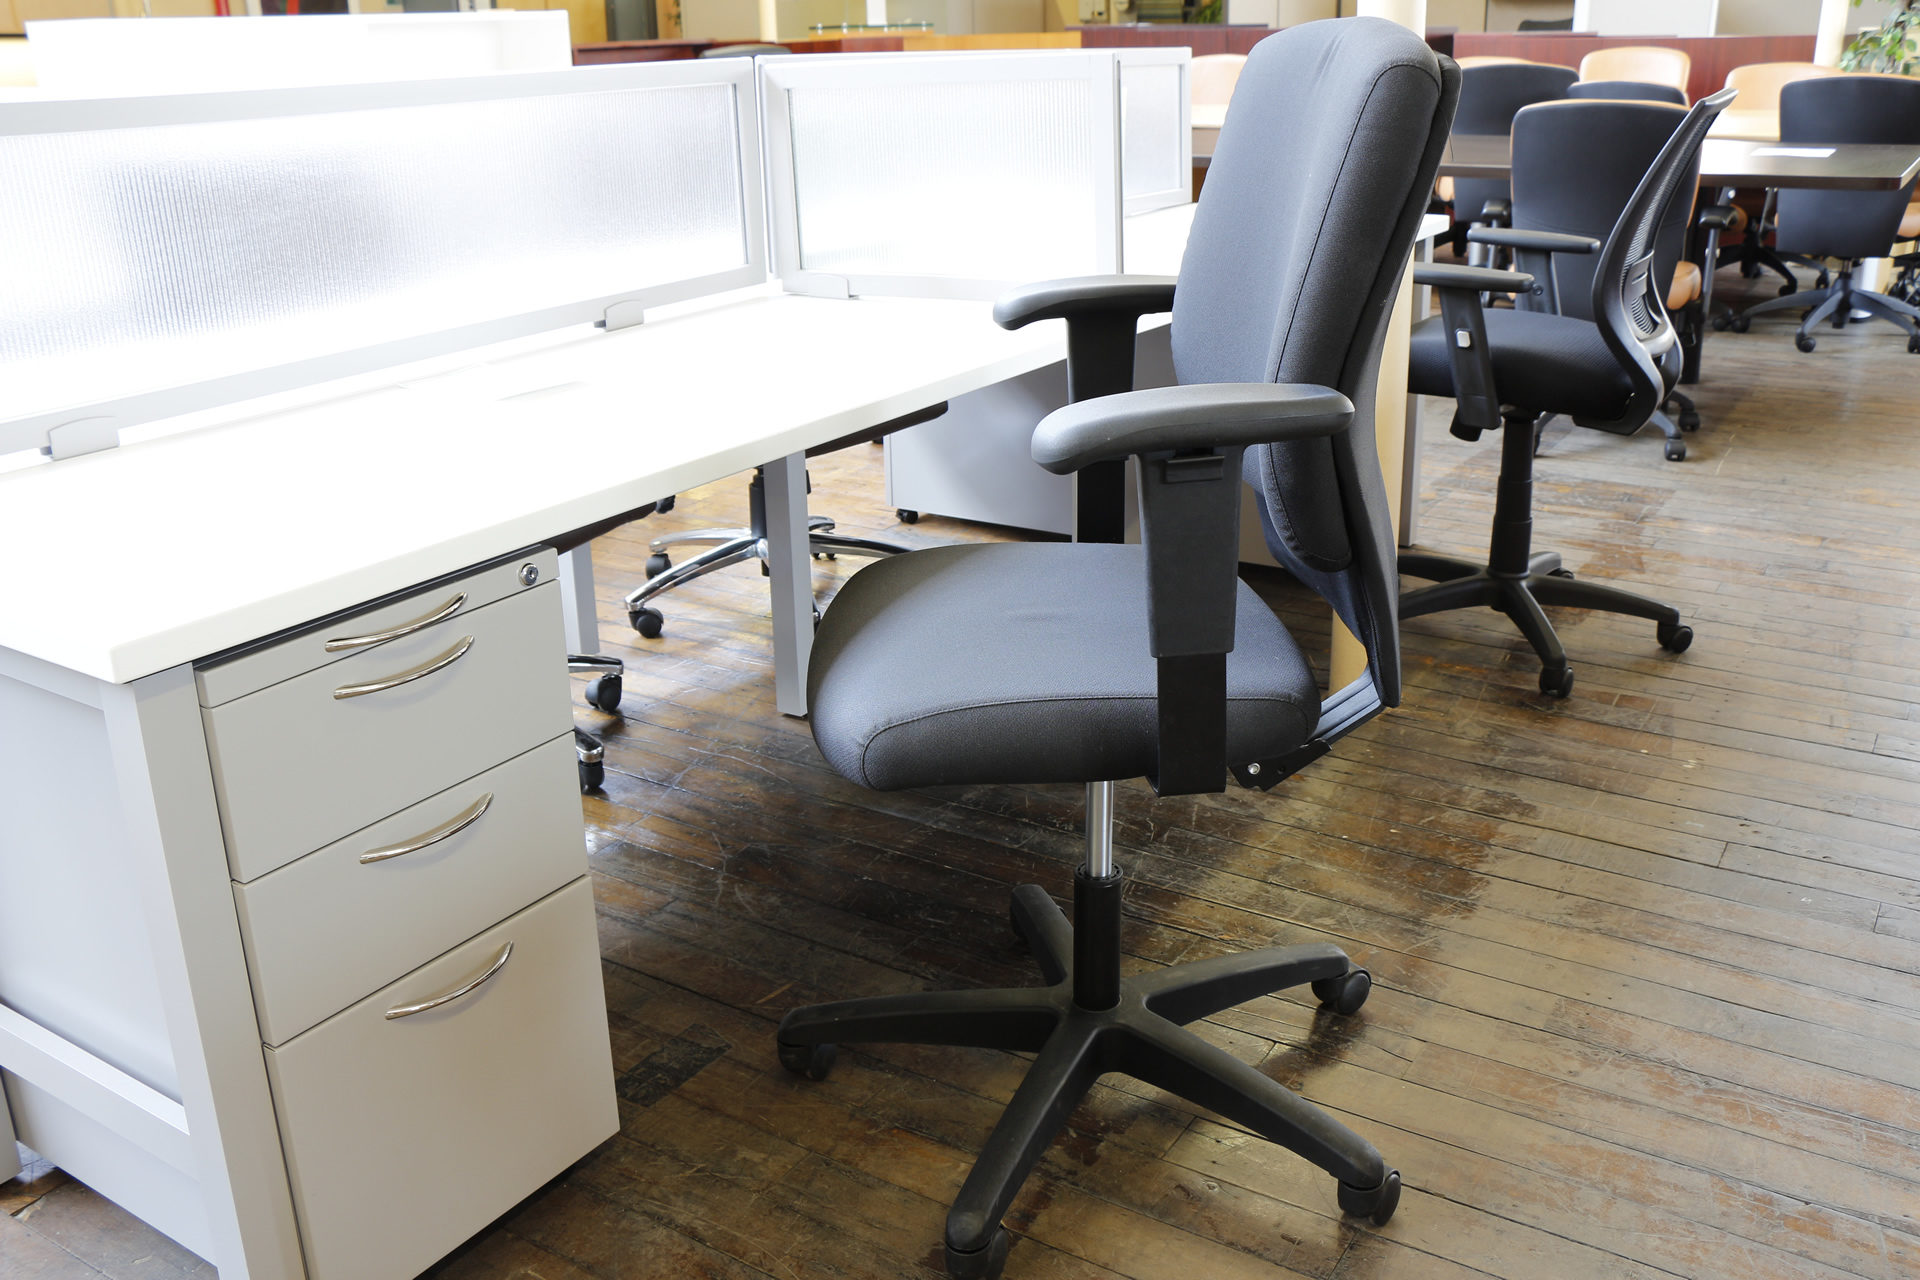 peartreeofficefurniture_peartreeofficefurniture_mg_4426.jpg